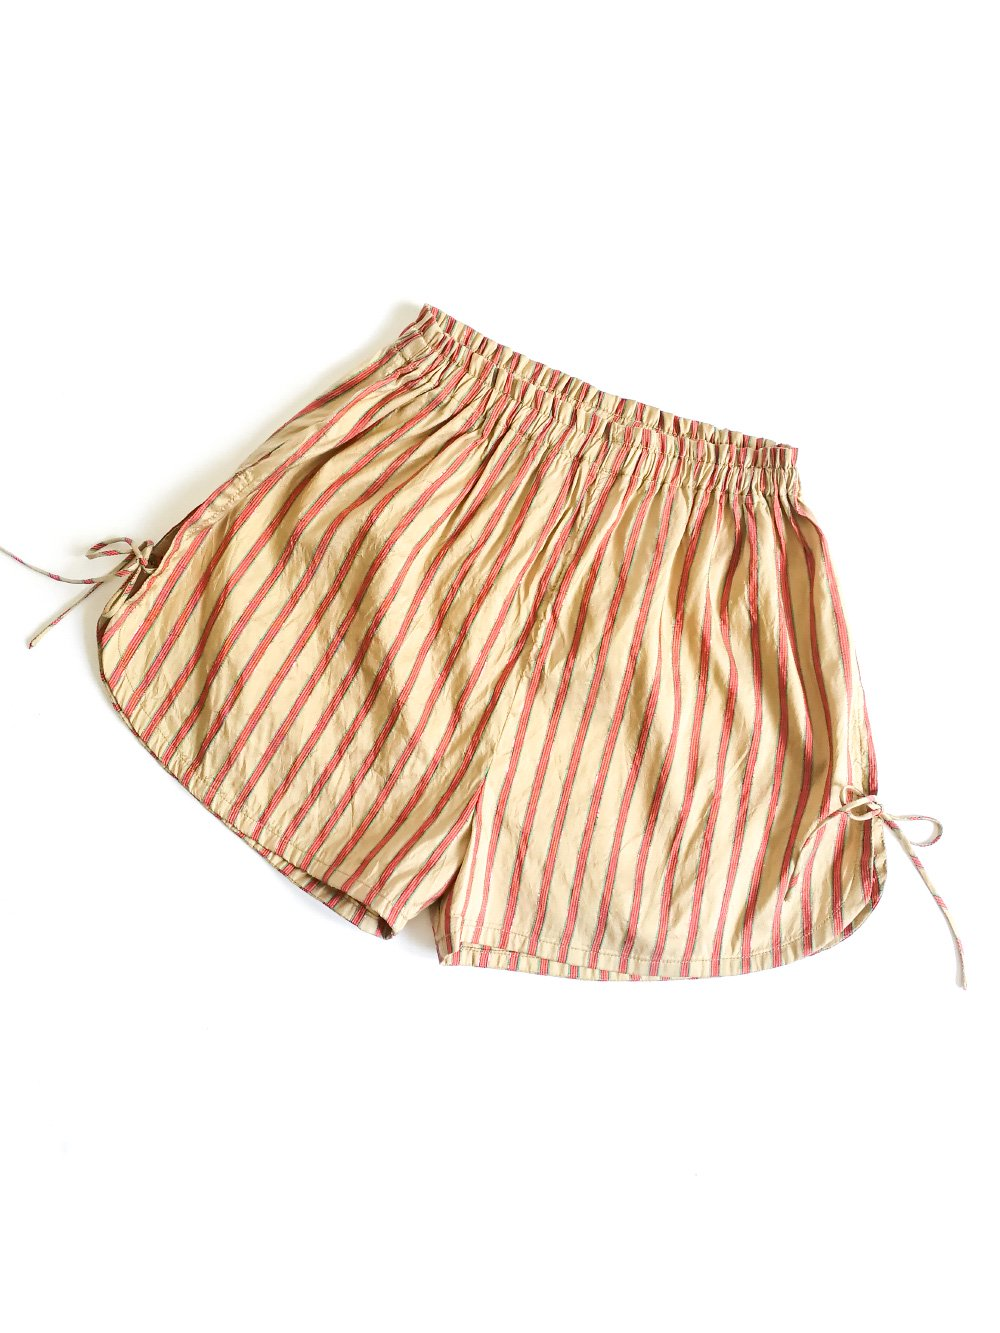 Shorts / original beige